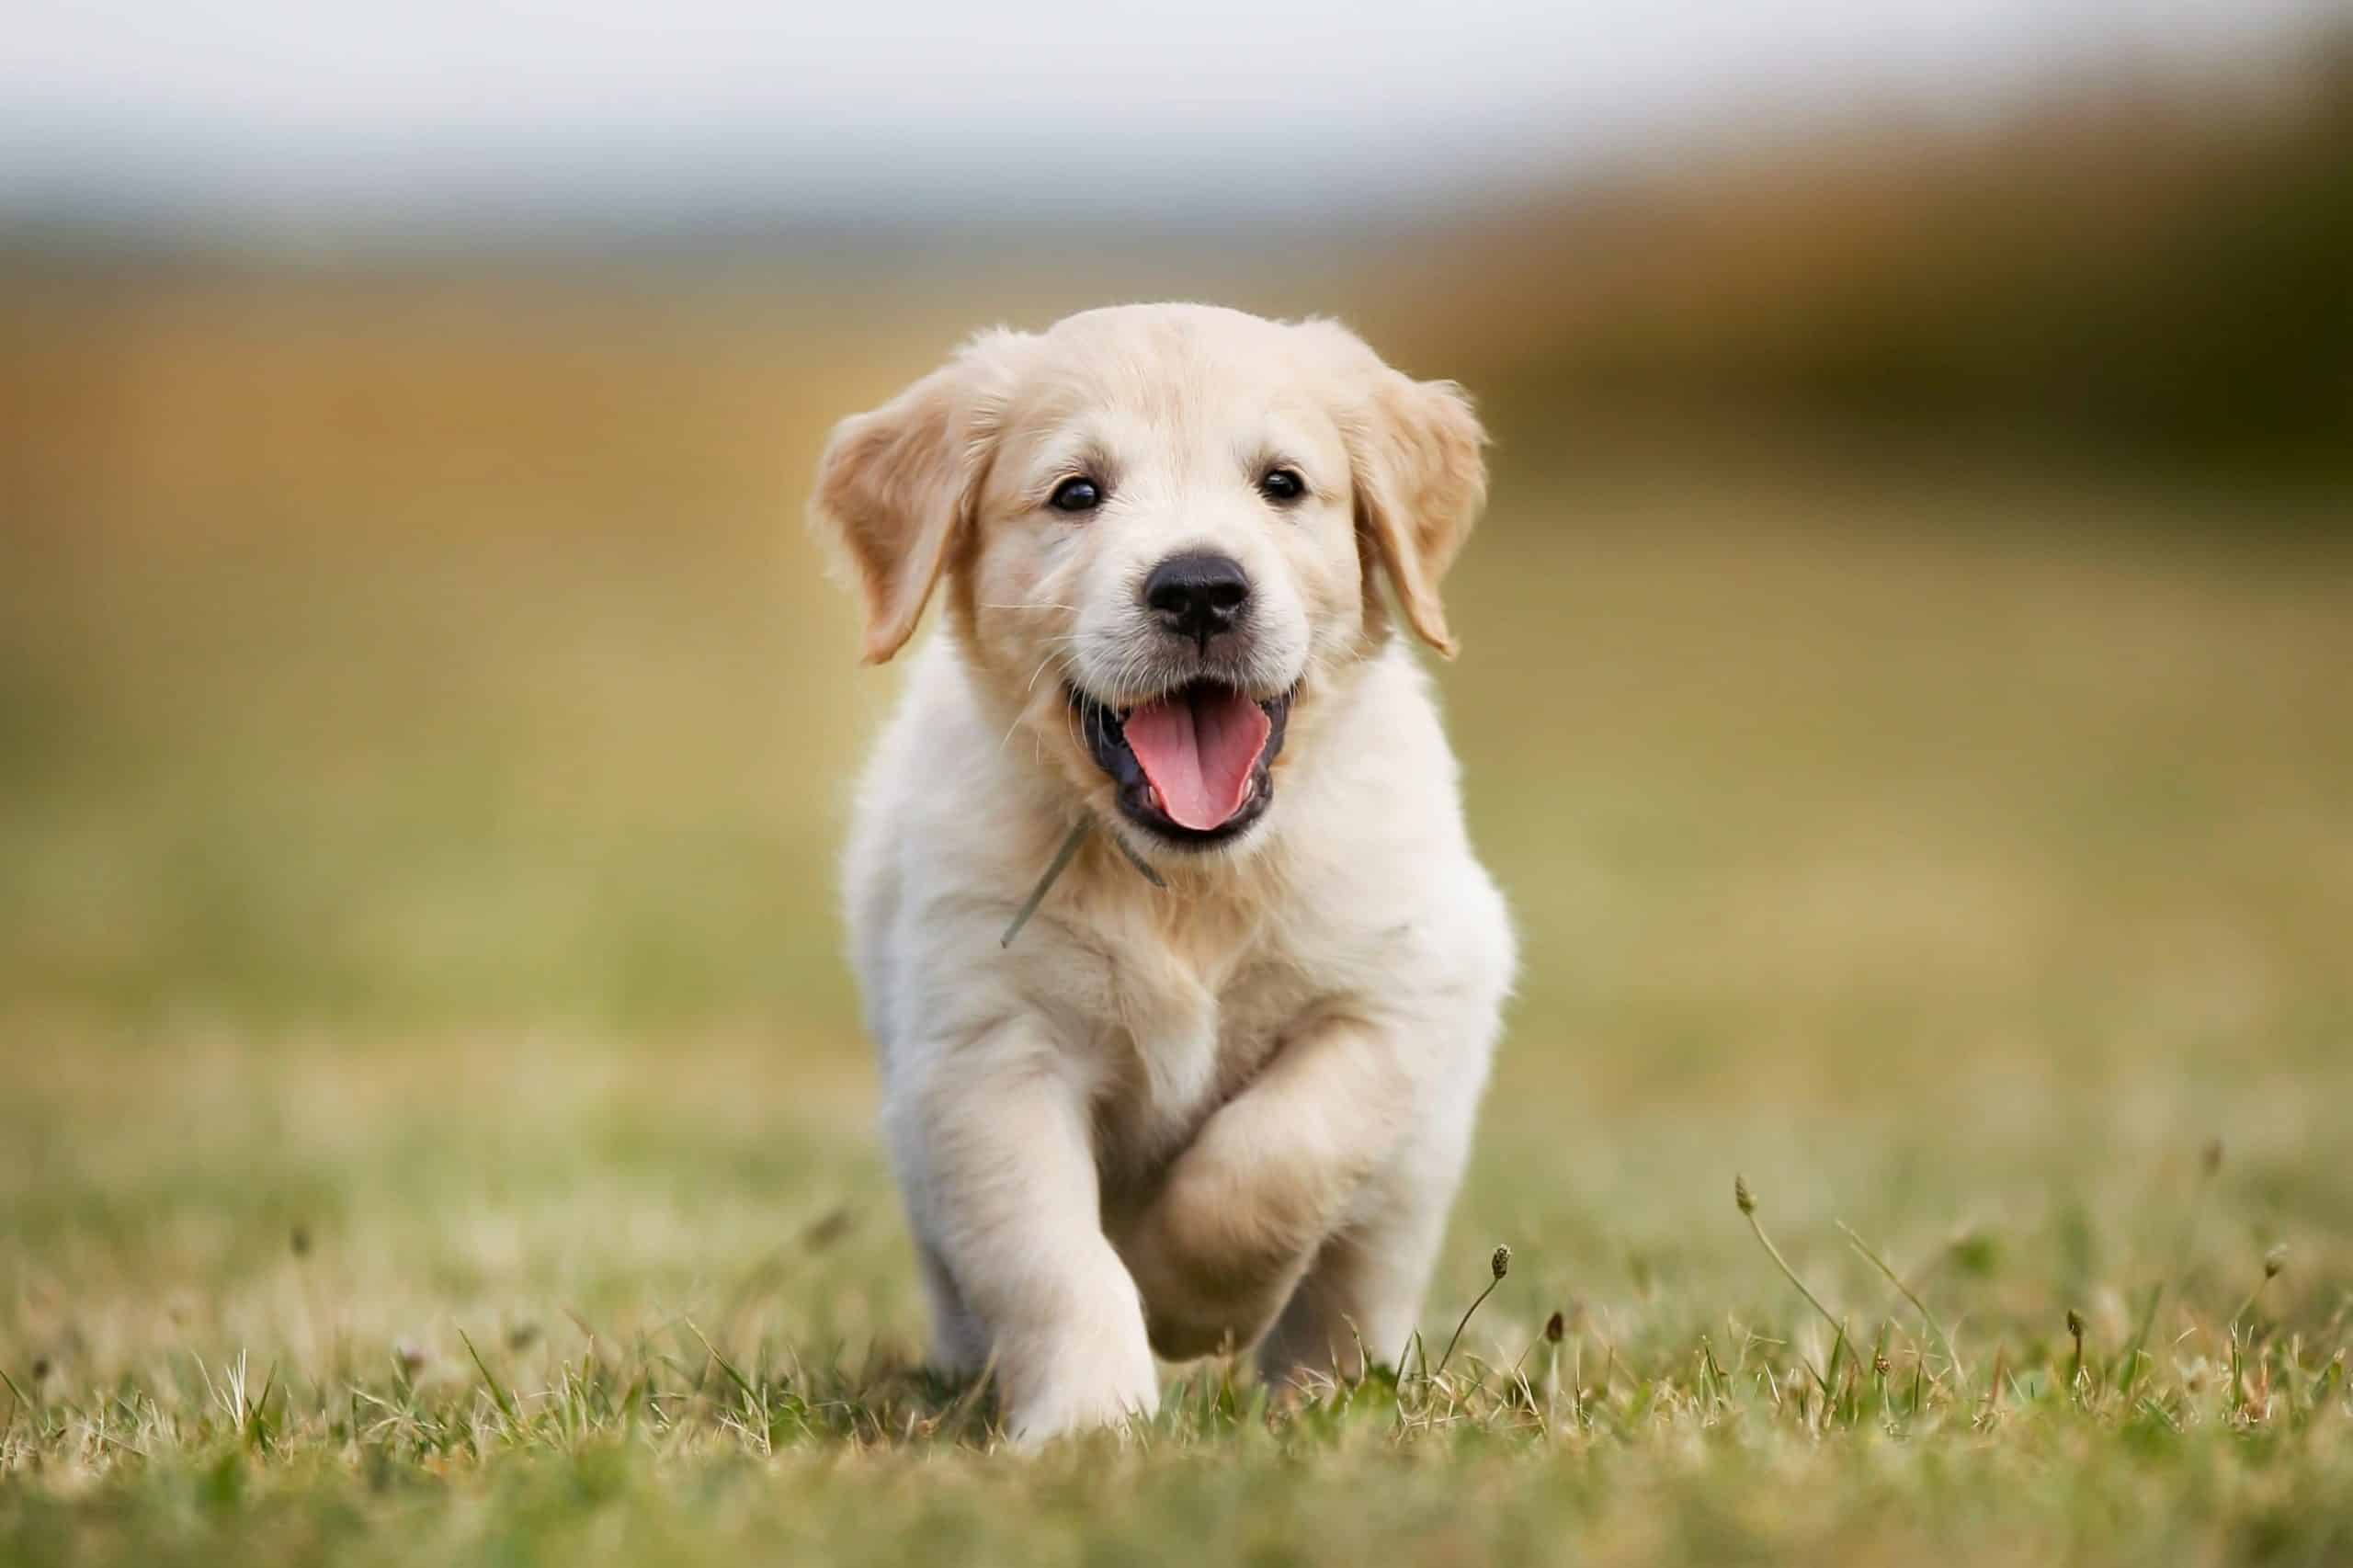 Care for golden retrievers: Provide healthy diet, exercise, training